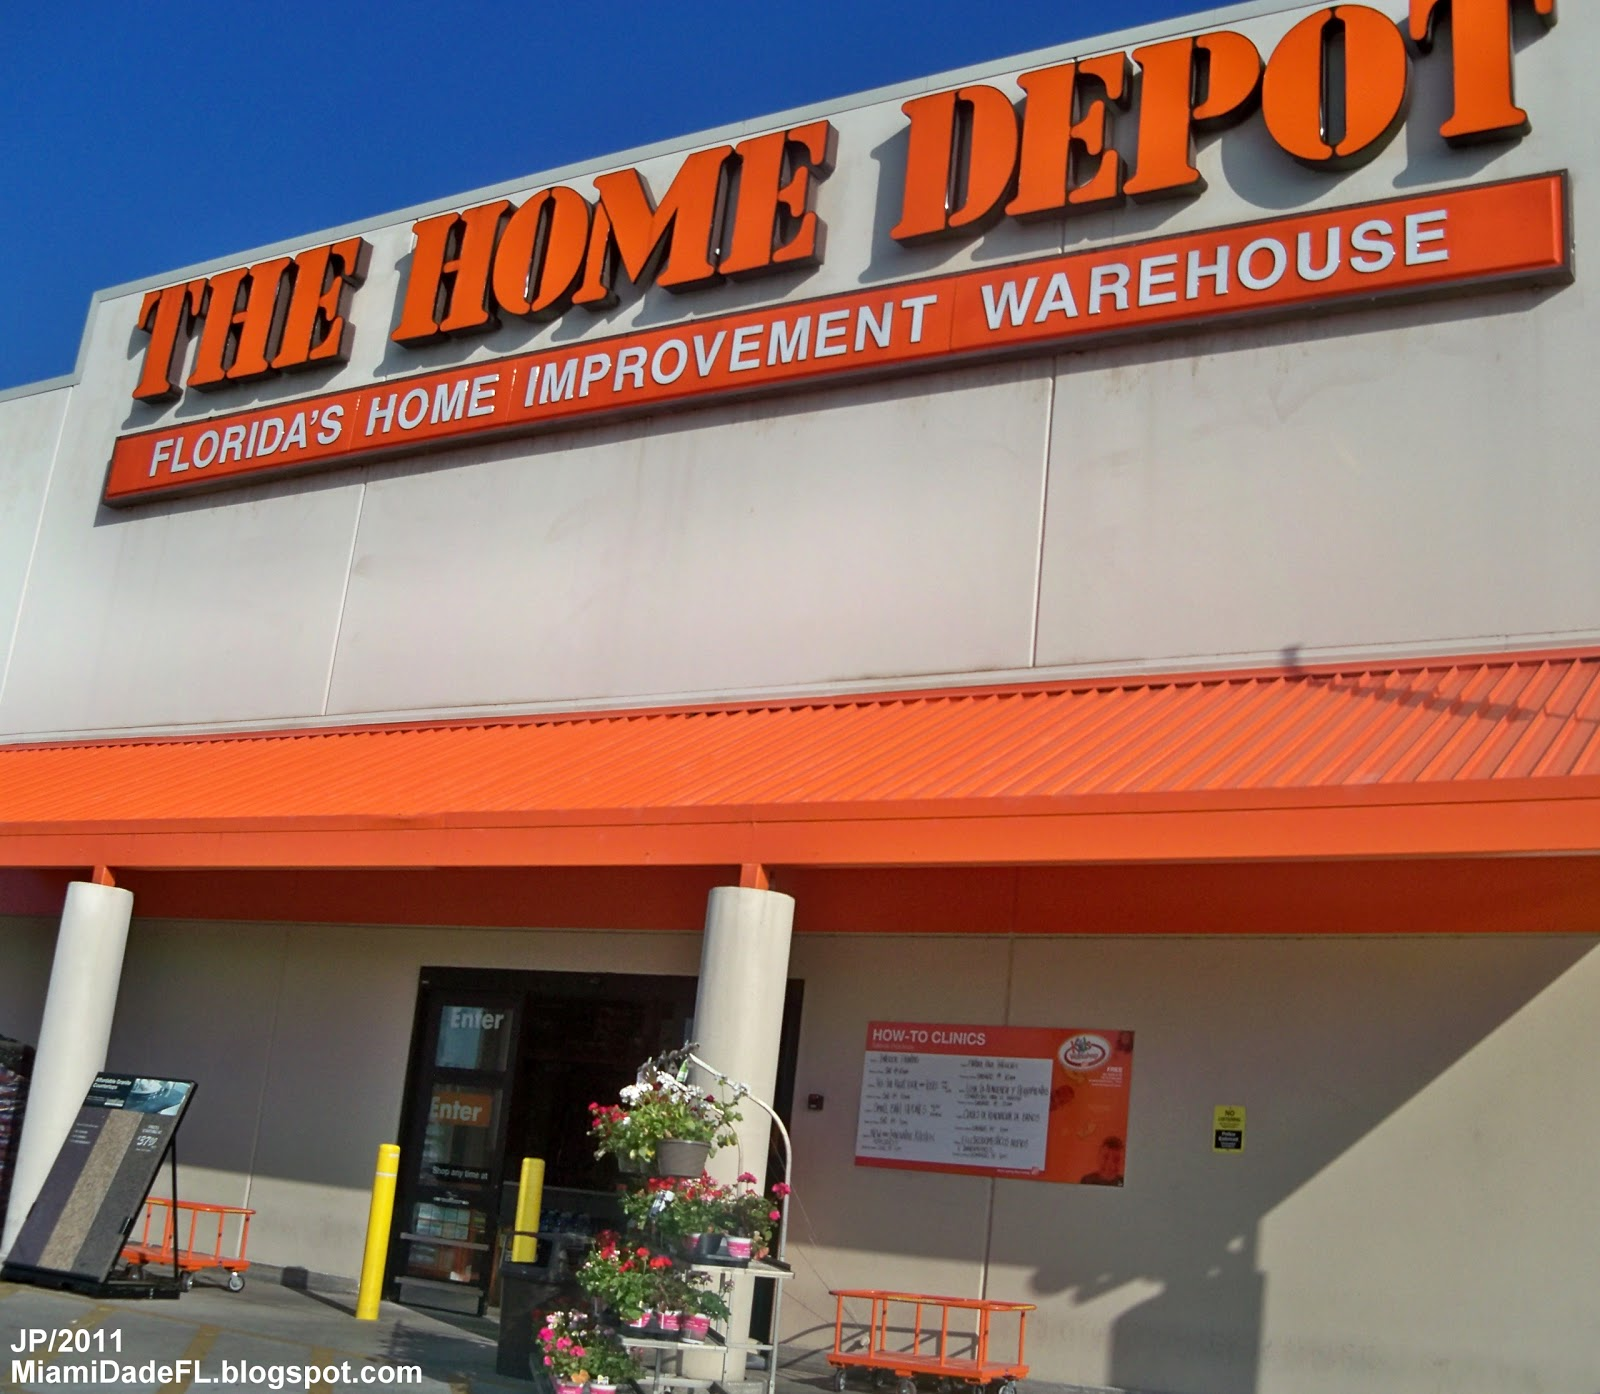 Bank St Home Depot Miami Florida Dade County South Beach Hotel Restaurant University